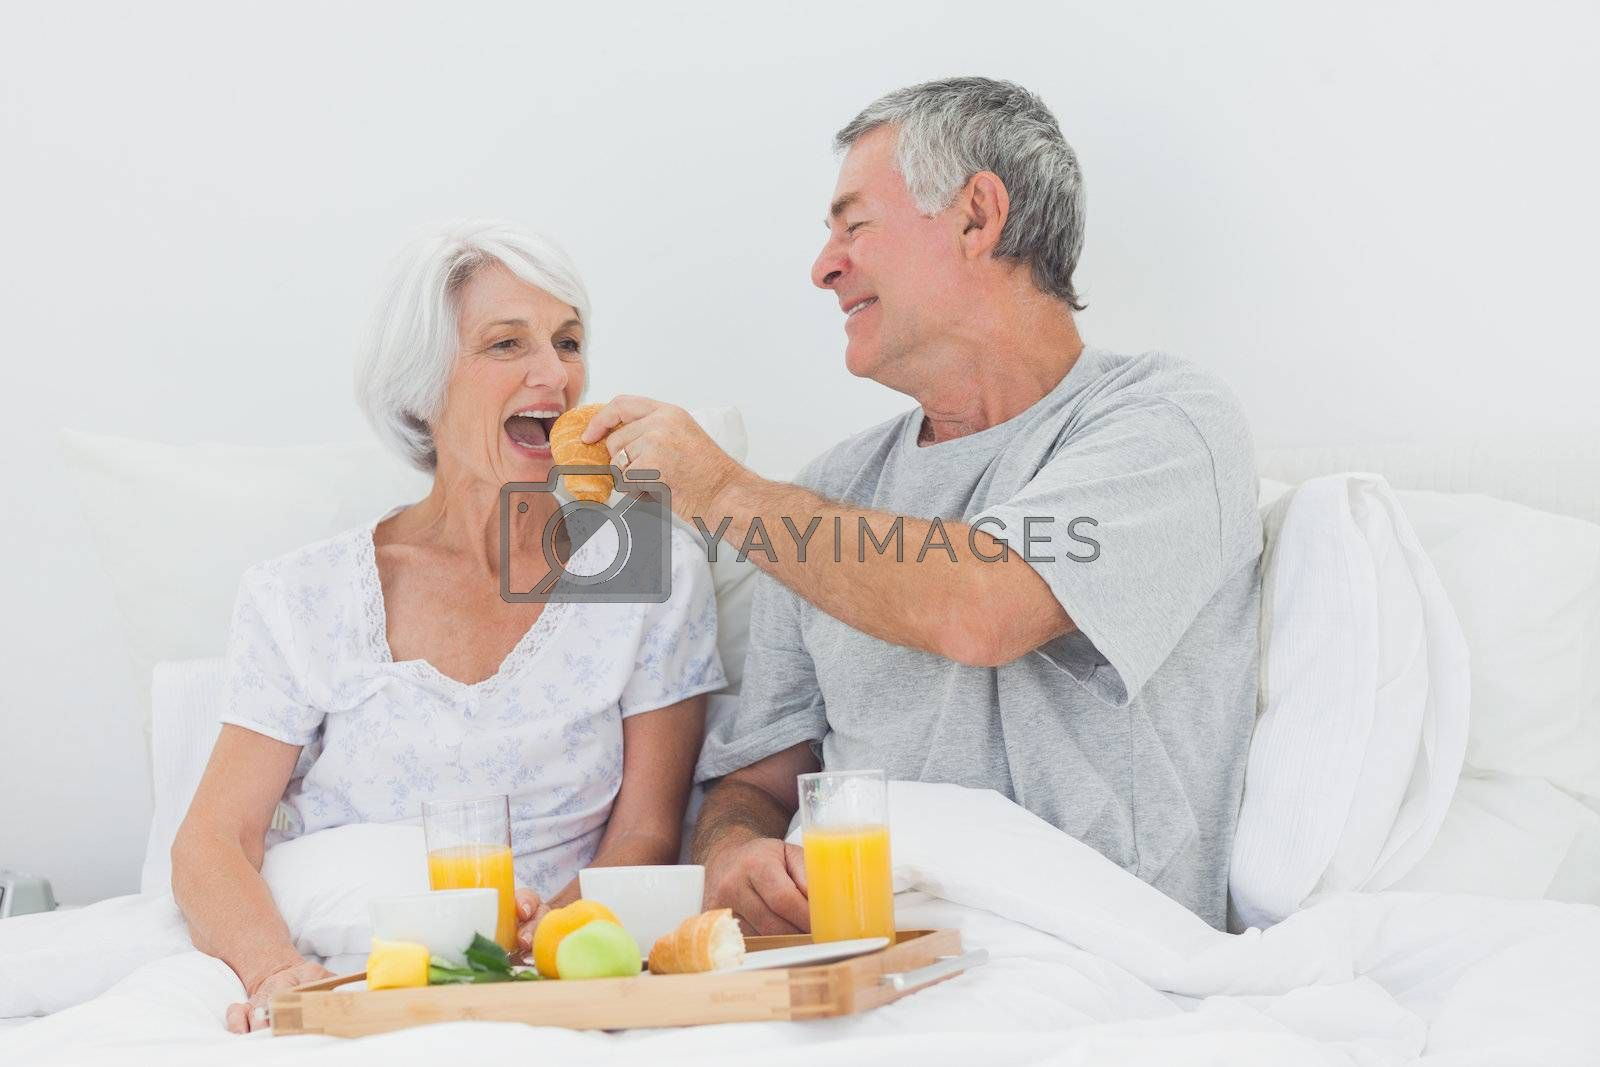 Man giving wife a croissant to wife while they are having breakfast in bed